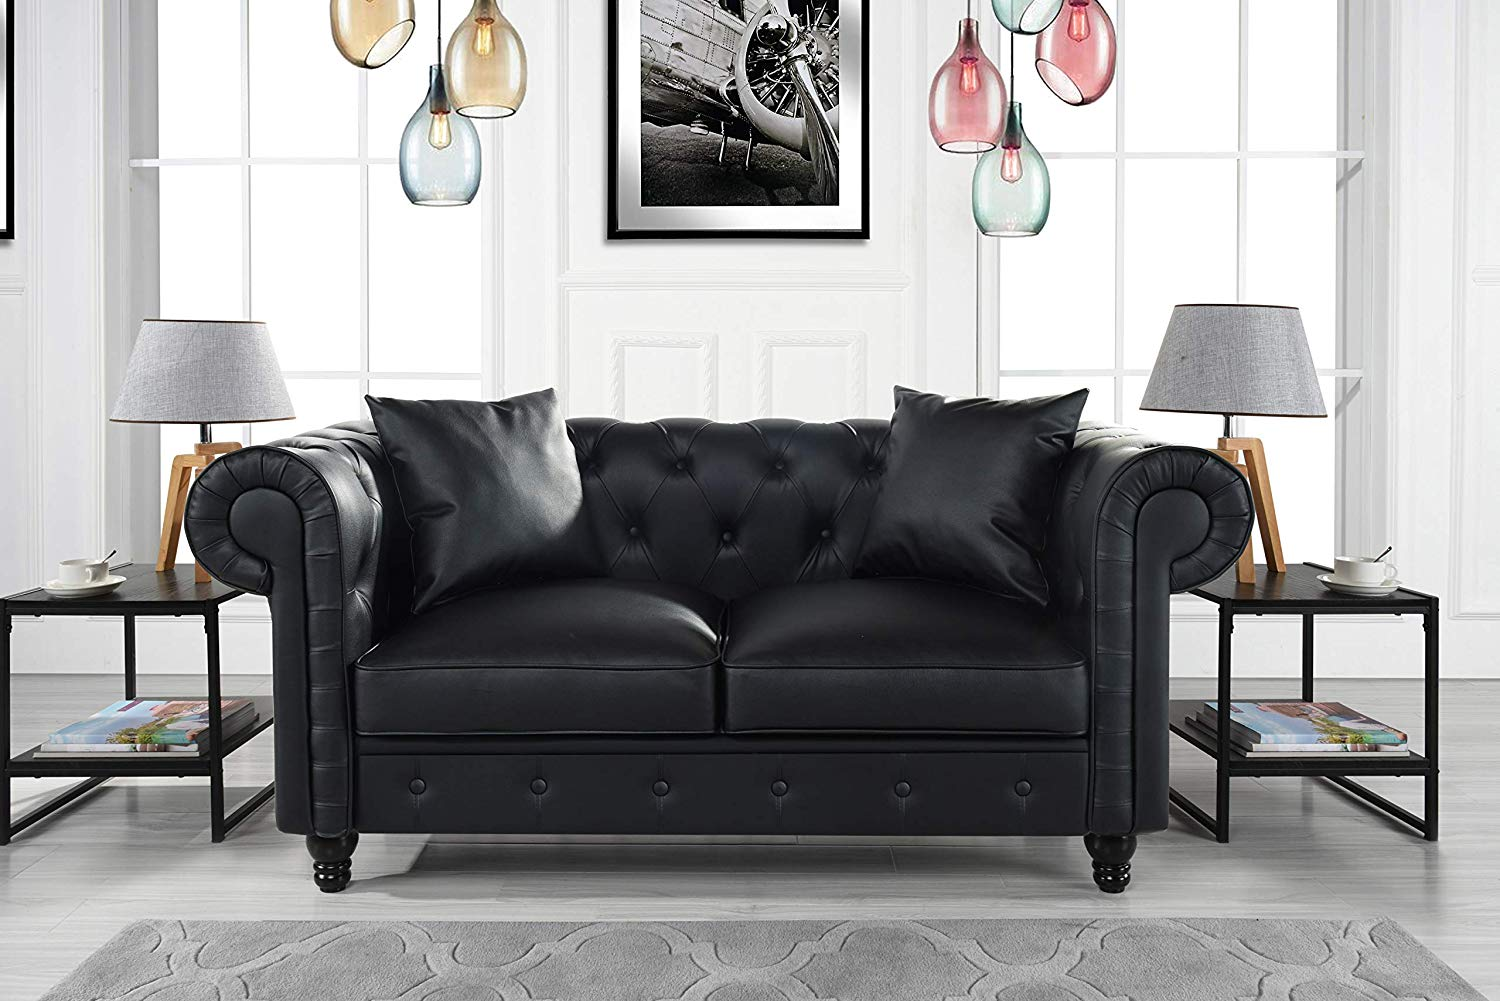 Classic Living Room Bonded Leather Scroll Arm Chesterfield Loveseat (Black)